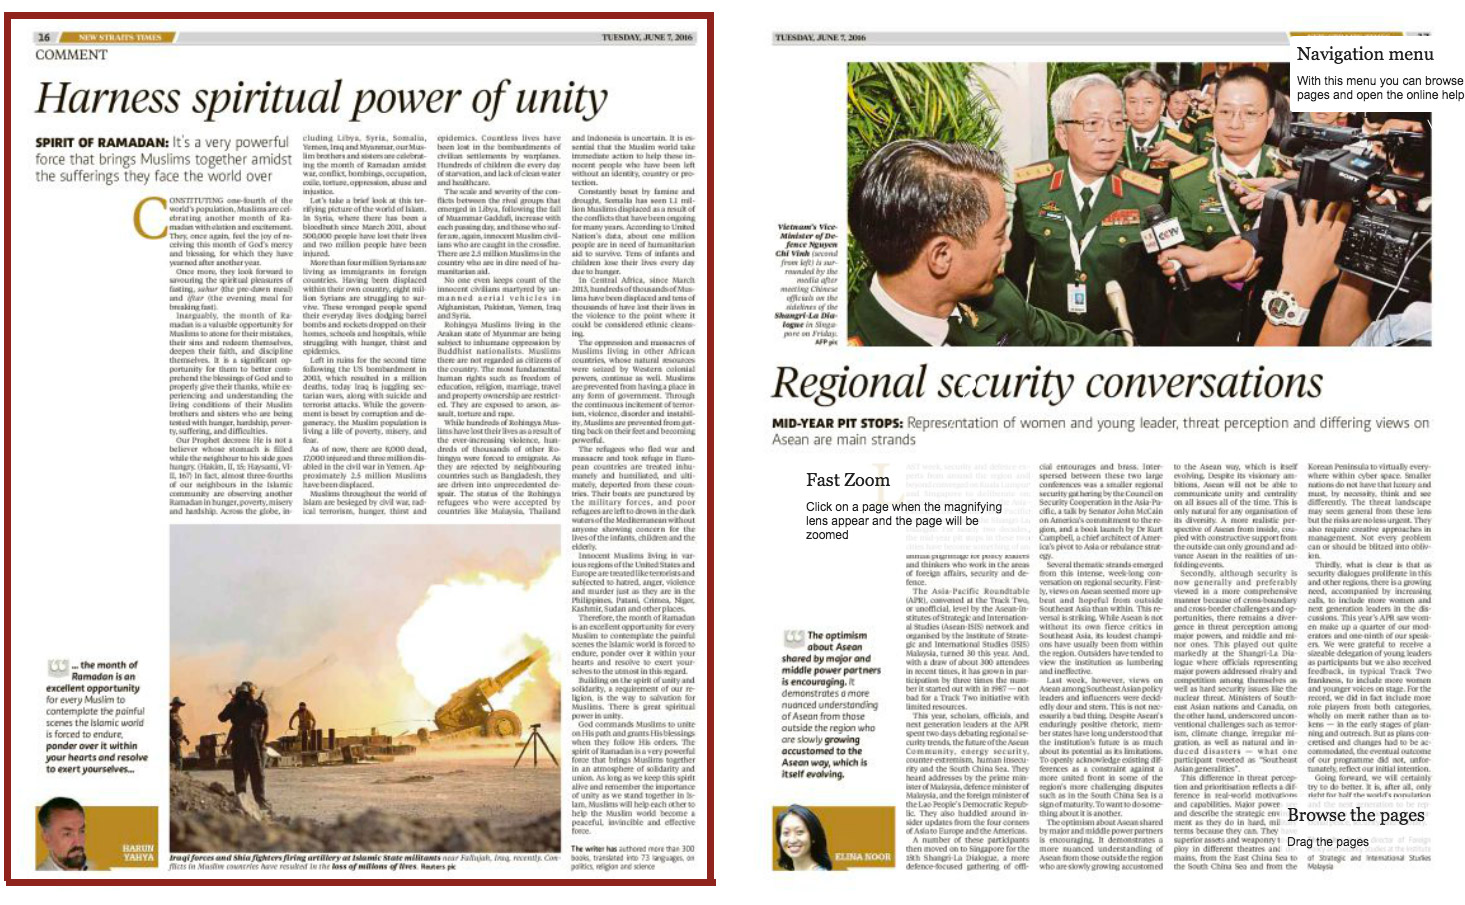 new straits_times_adnan_oktar_harness_spiritual_power_of_unity1